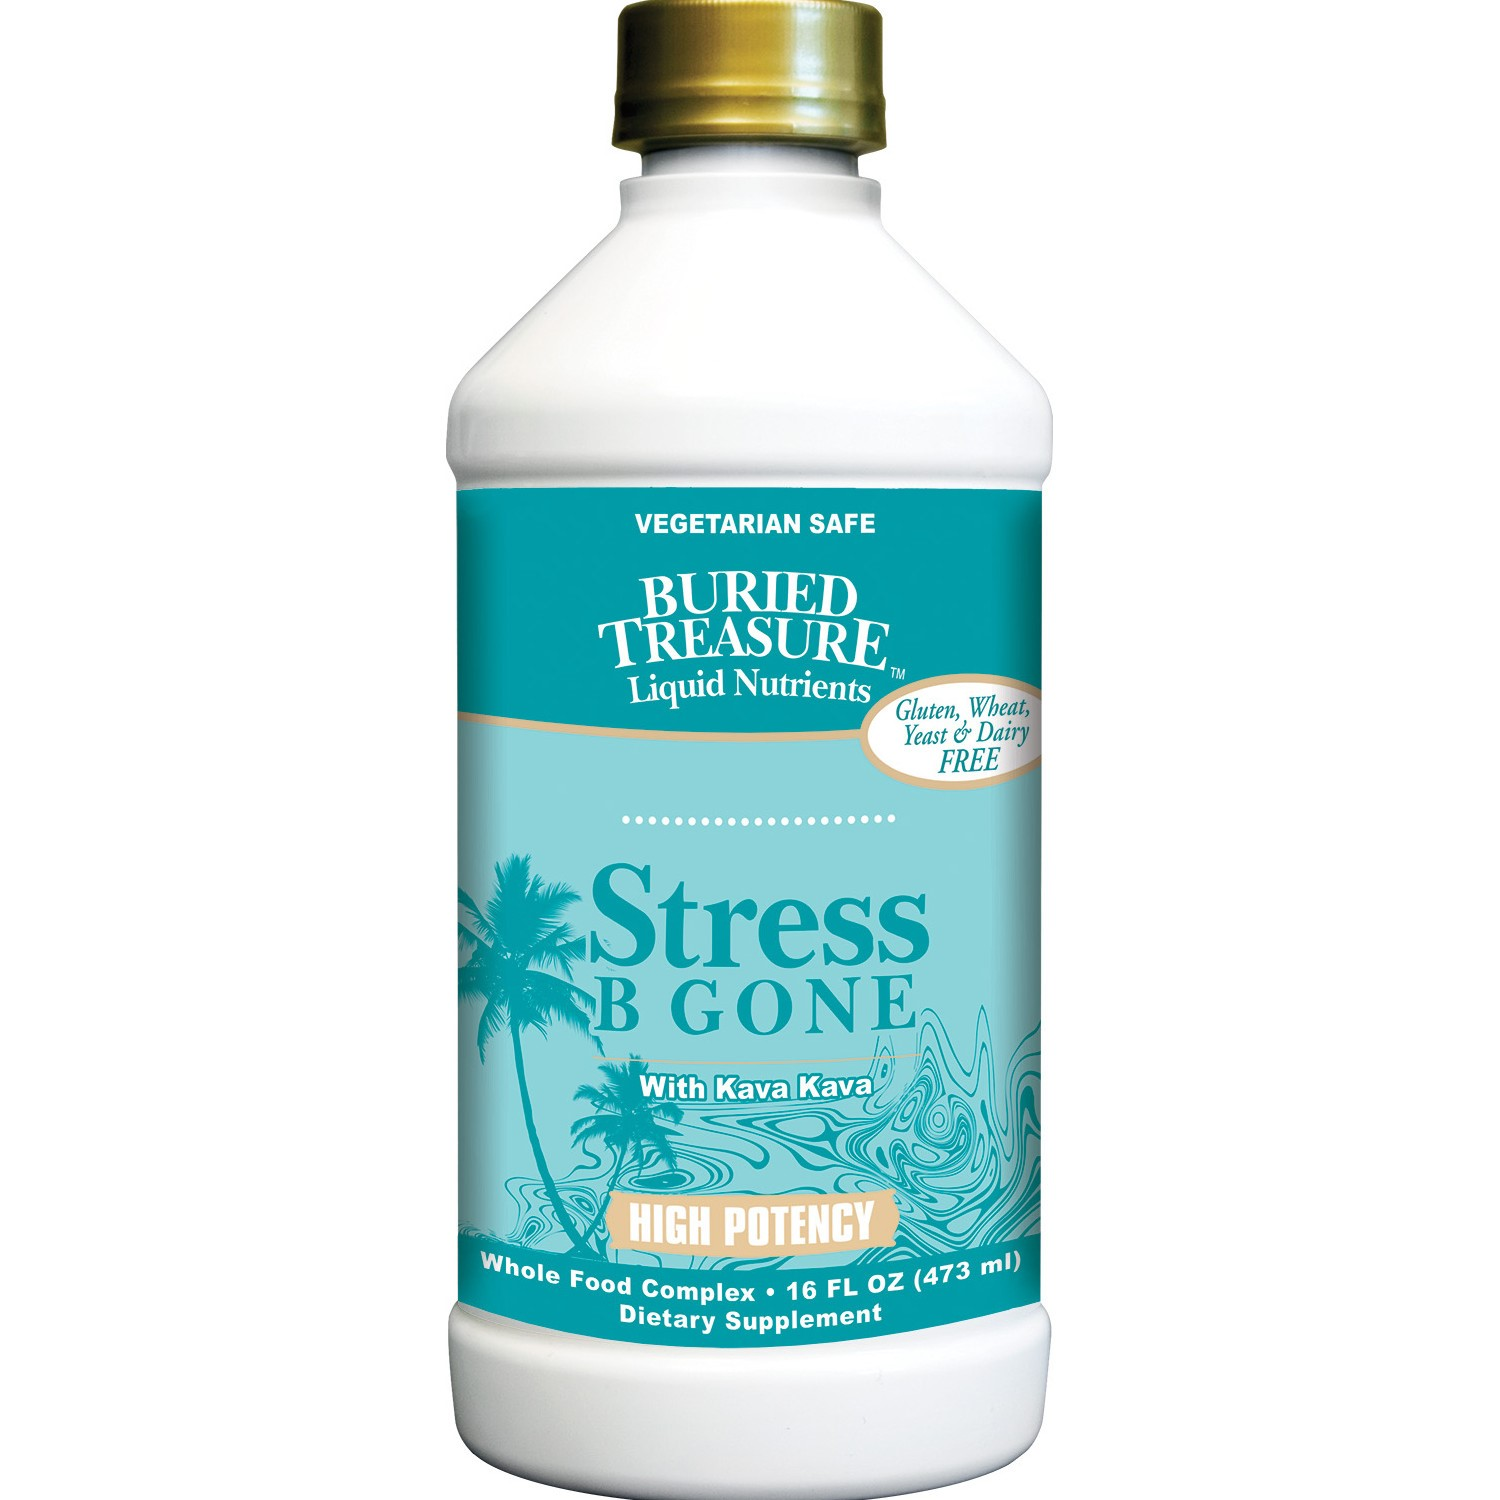 Buried Treasure Stress B Gone with Kava Kava Liquid, 16 Fl Oz